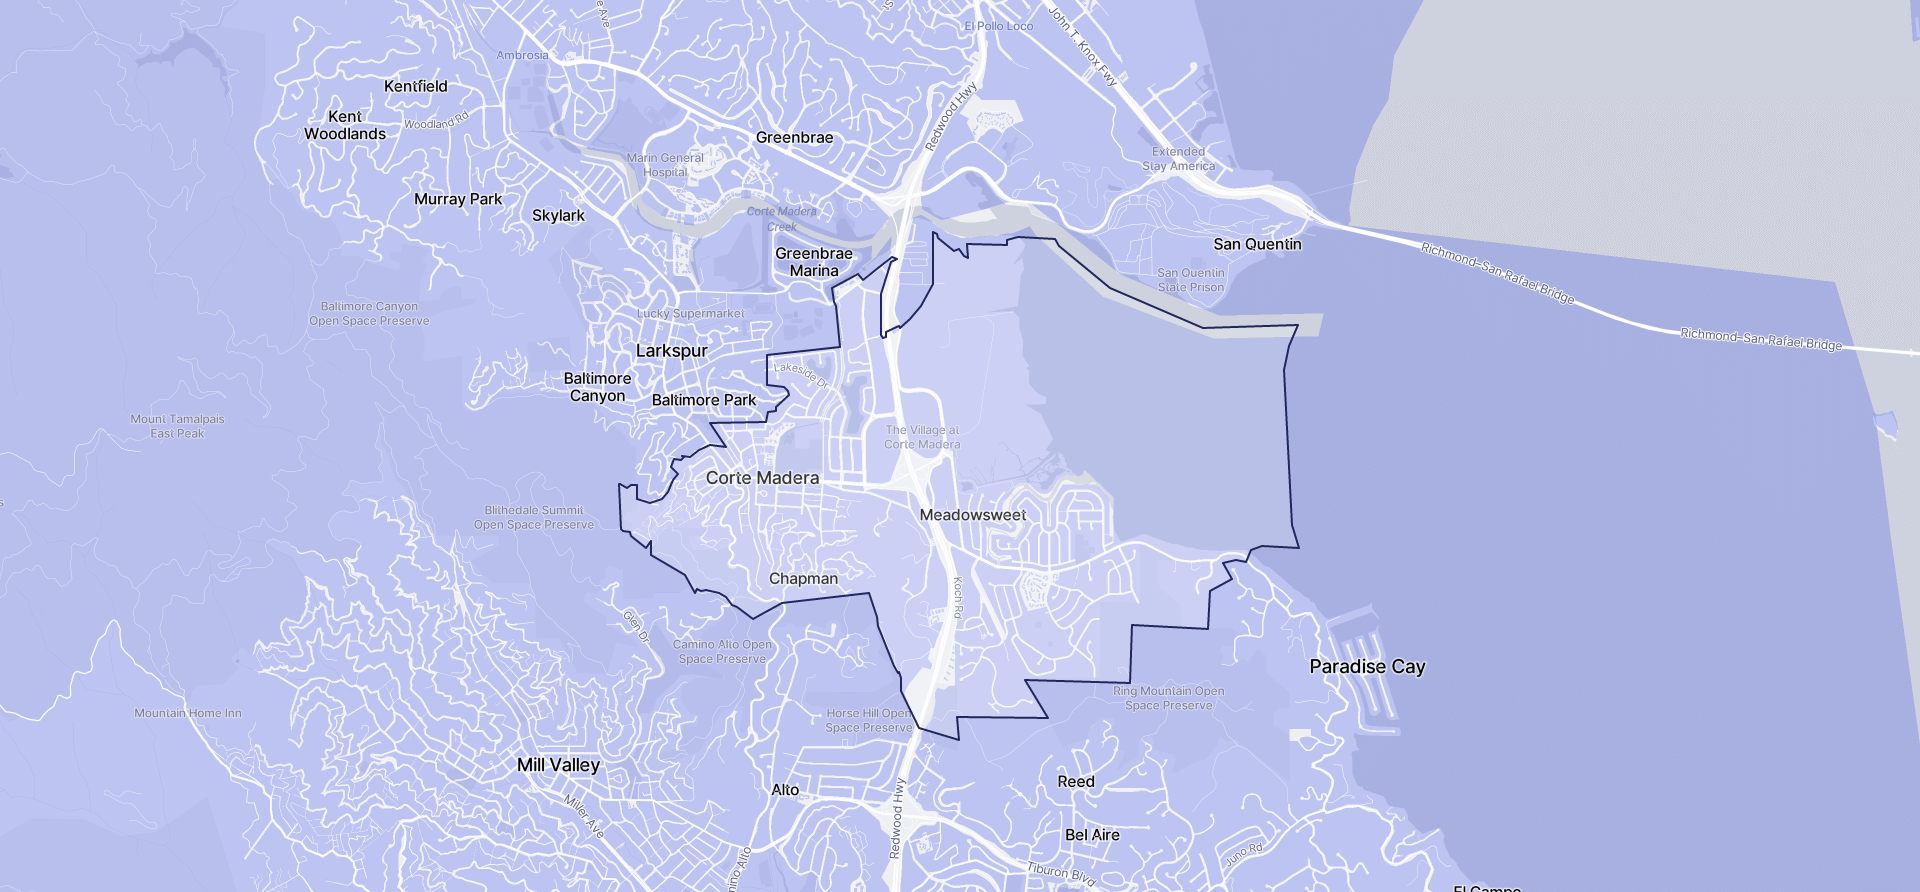 Image of Corte Madera boundaries on a map.